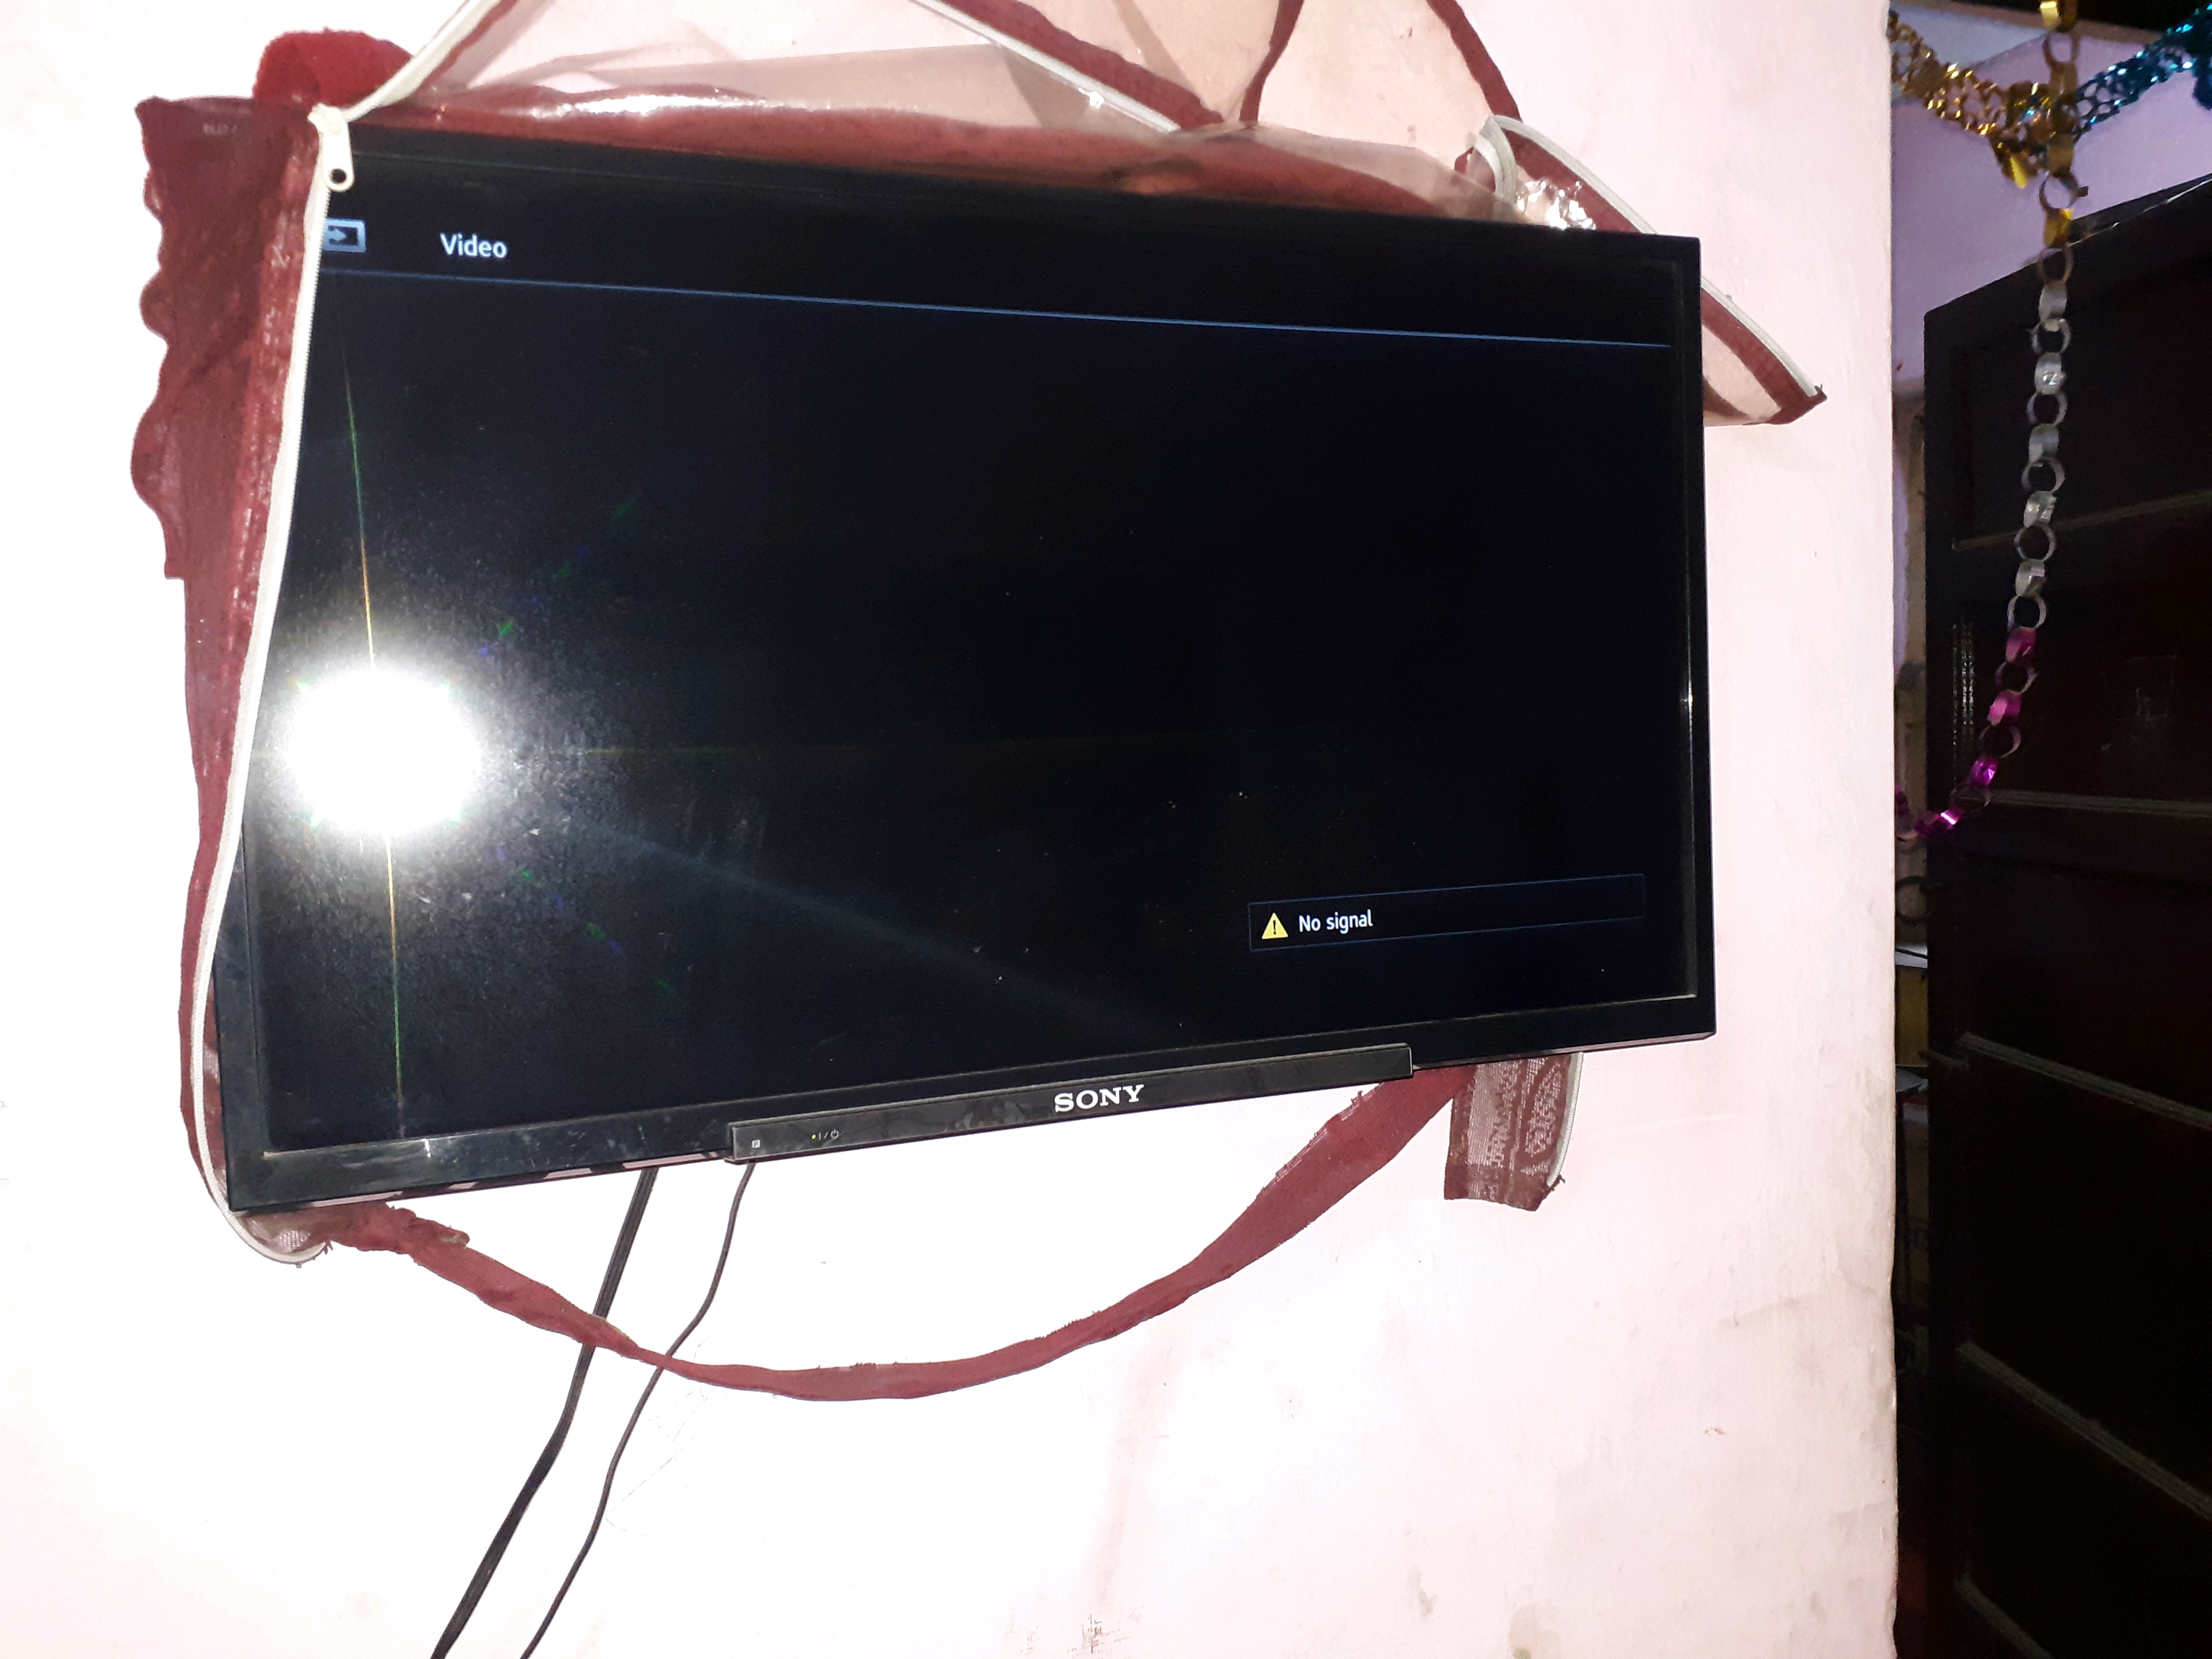 Good qulity product and good service given by sony - SONY BRAVIA KLV